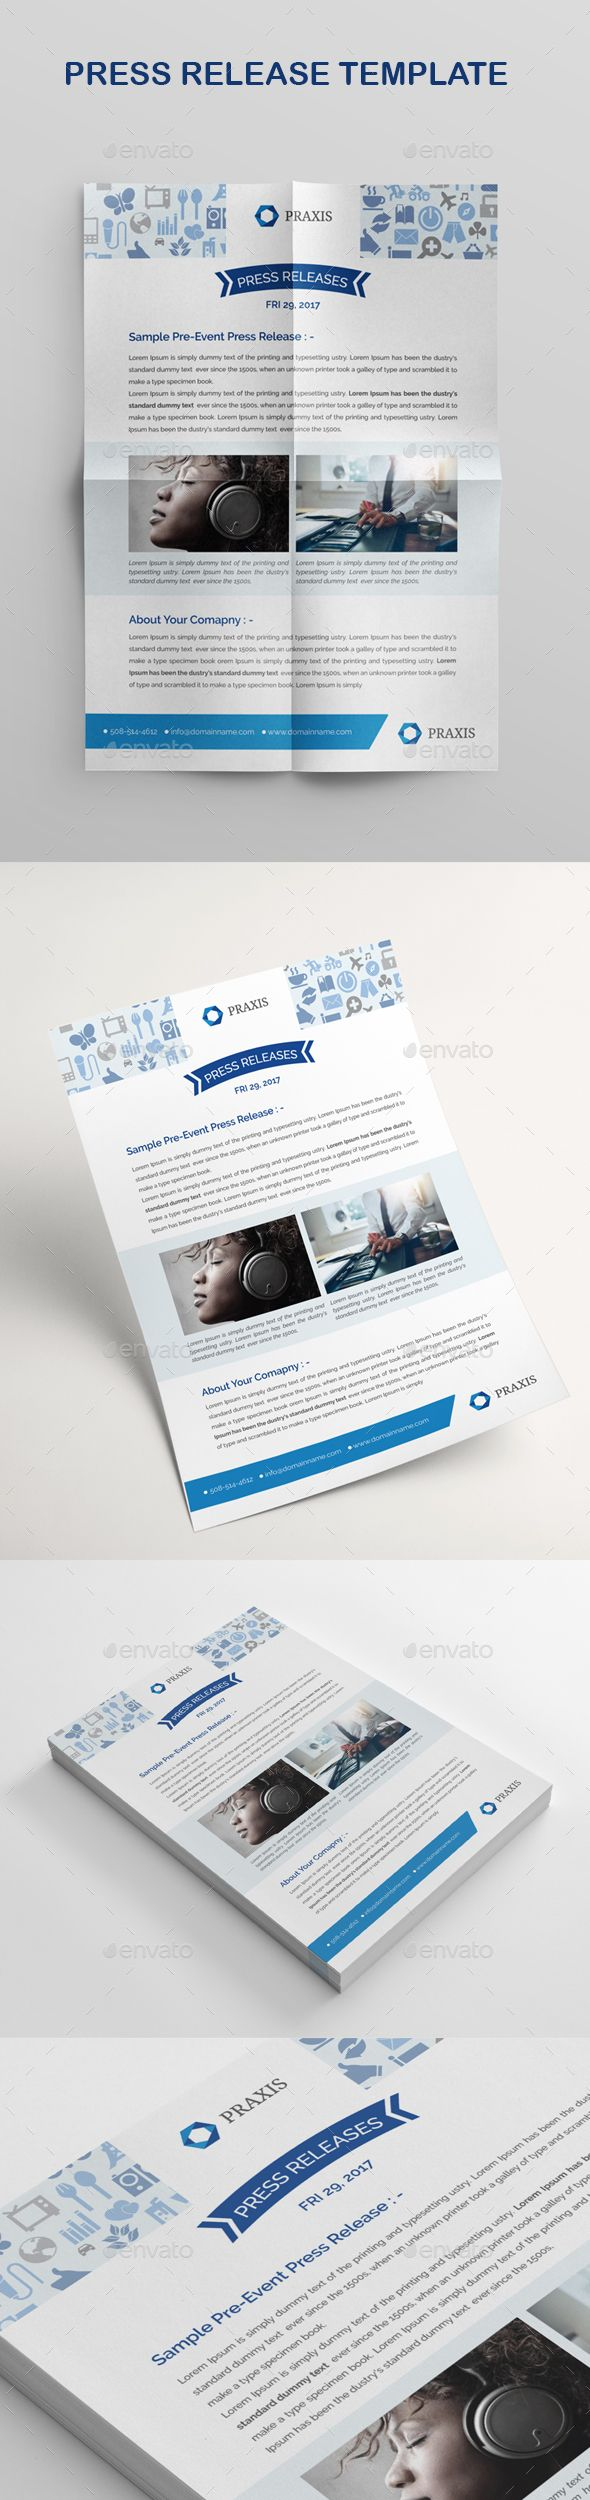 Press Release Evergreen  Perene  Press Release Email Templates